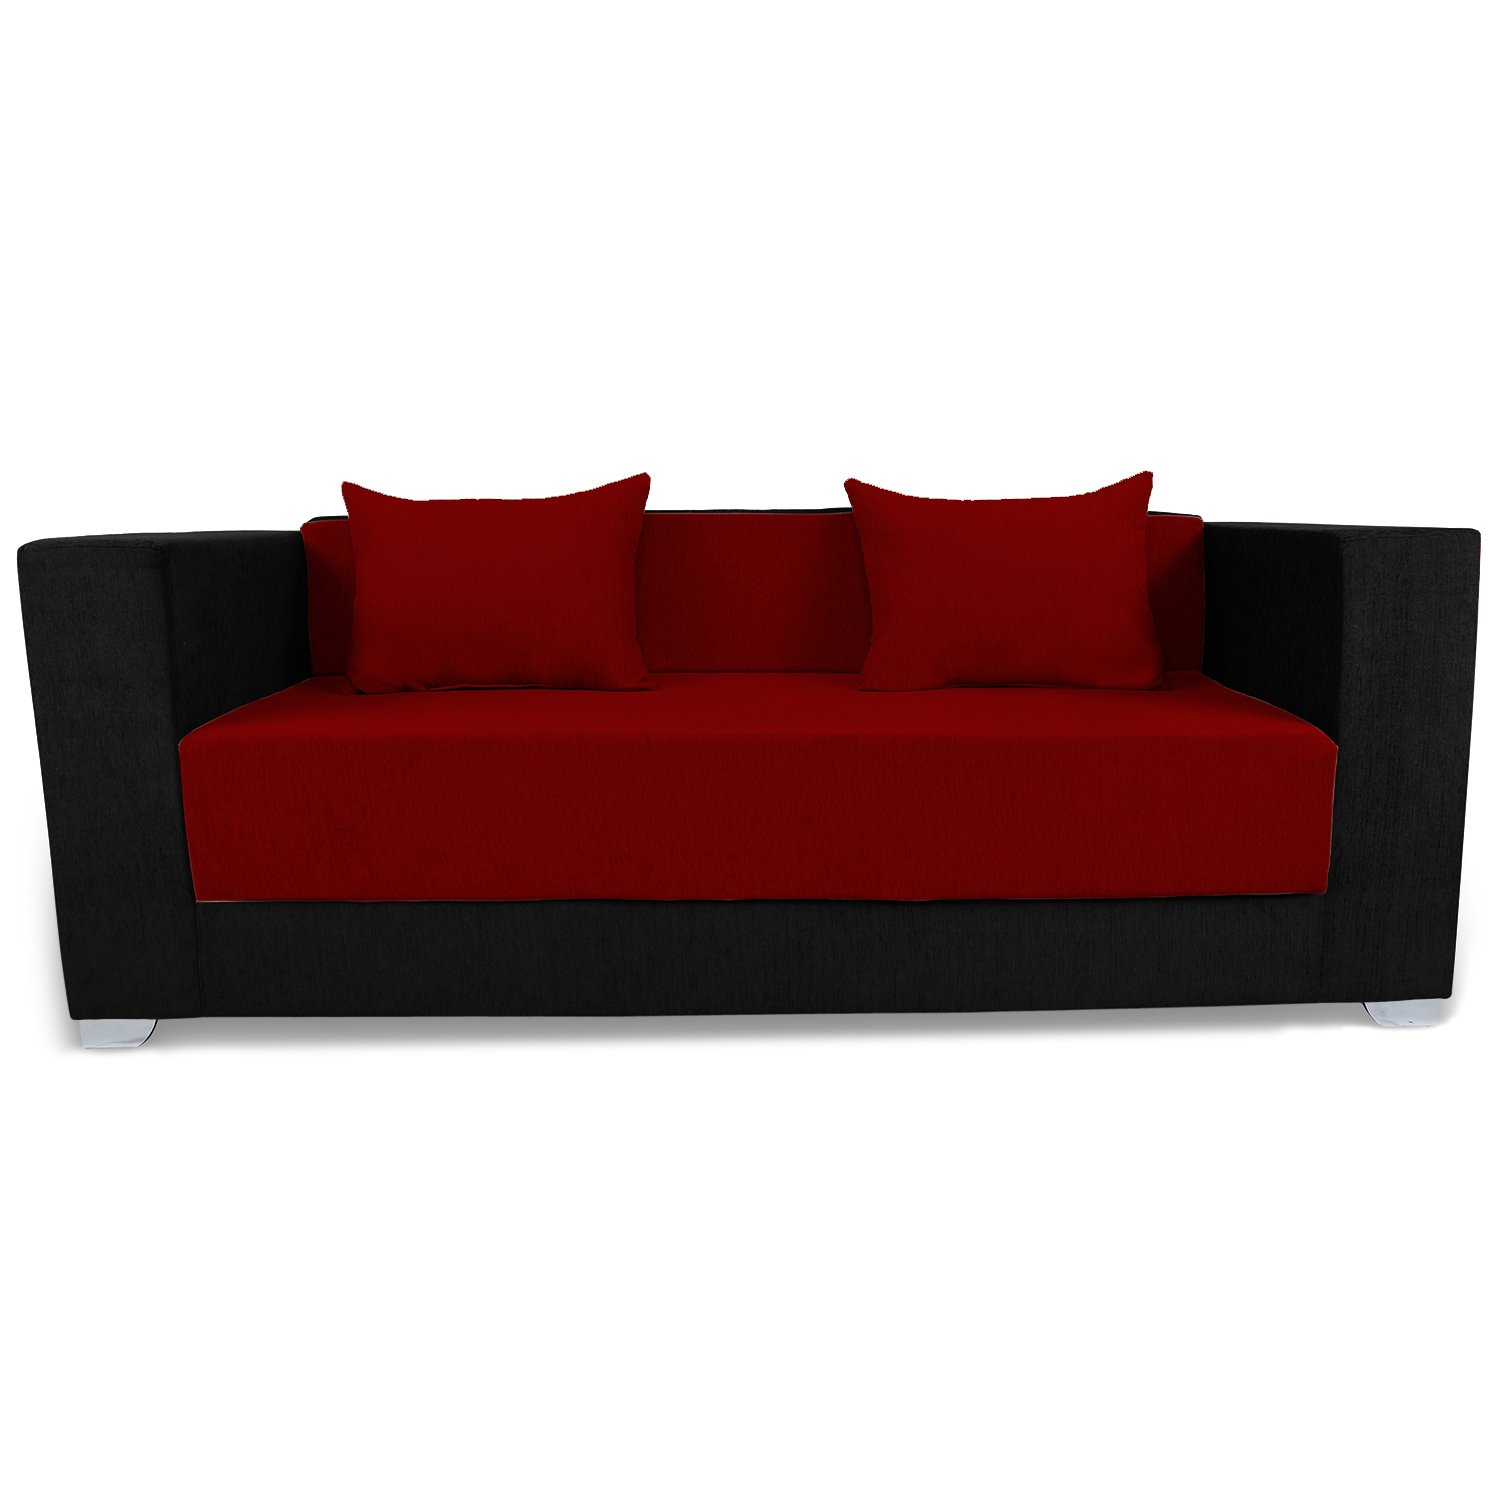 Adorn India Almond 3 Seater Sofa Cumbed (Maroon & Black)